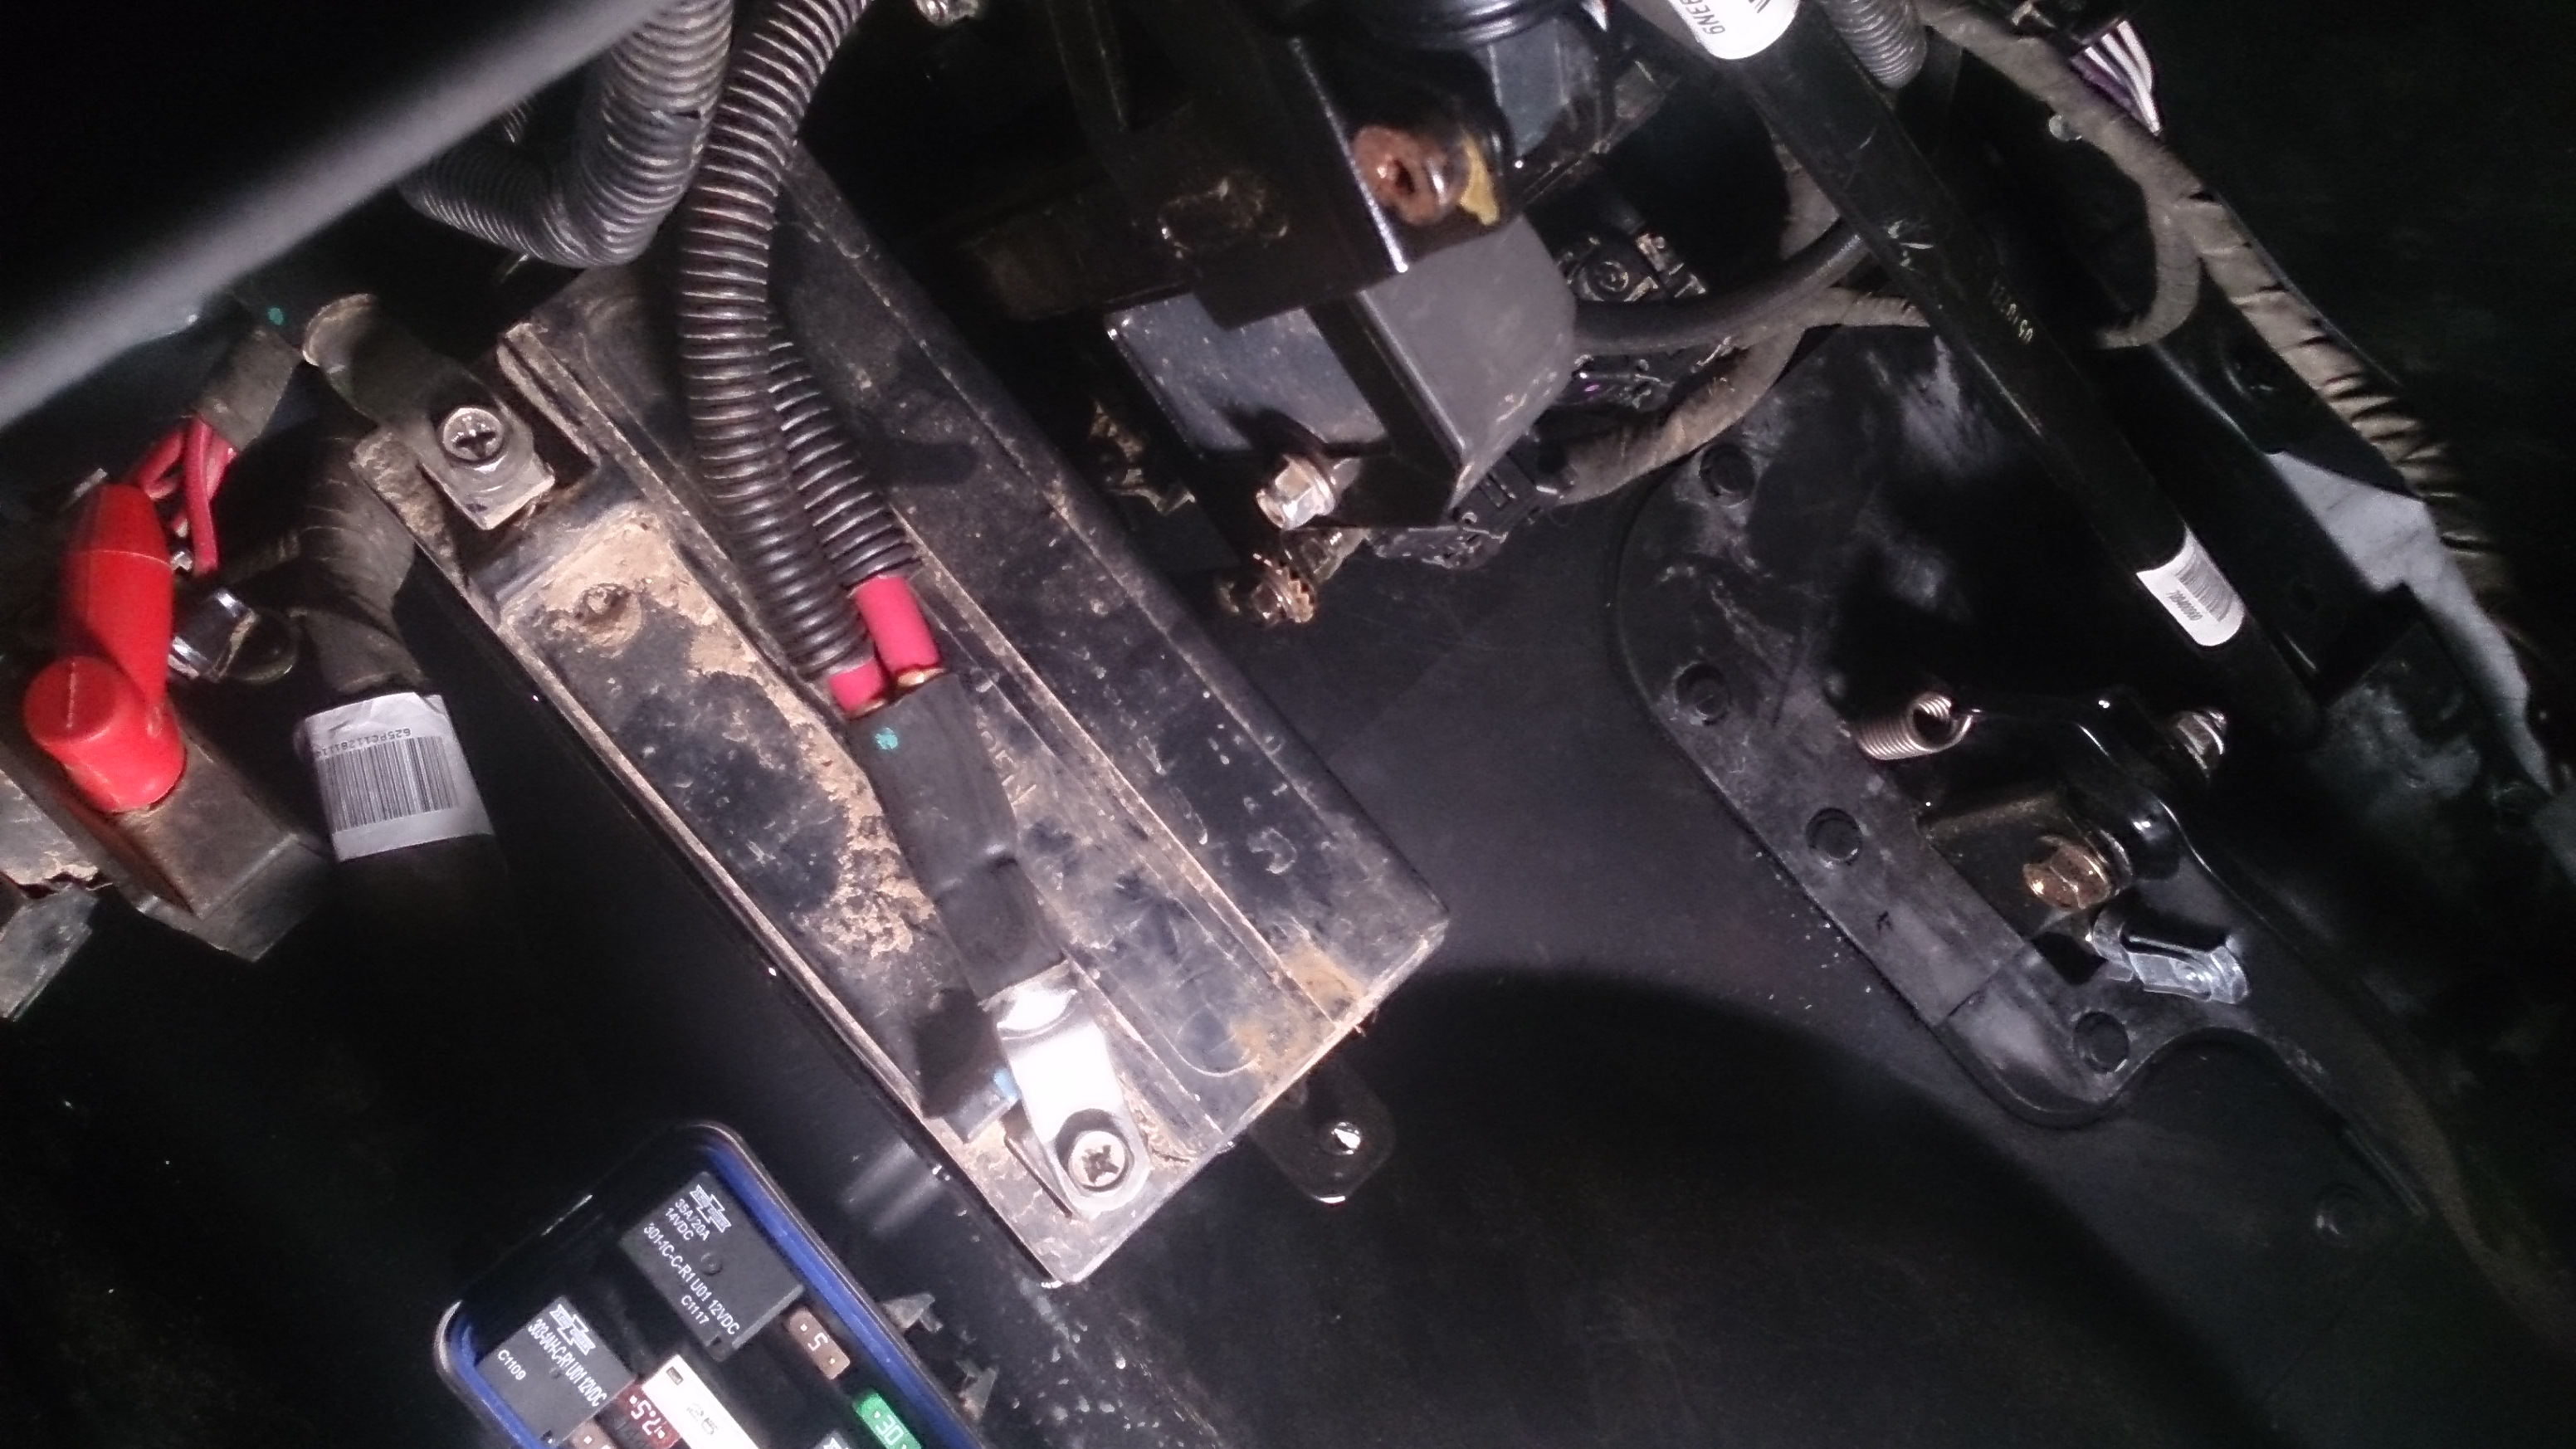 wiring diagram dual battery system feet and legs frame swap electrical issues - can-am commander forum